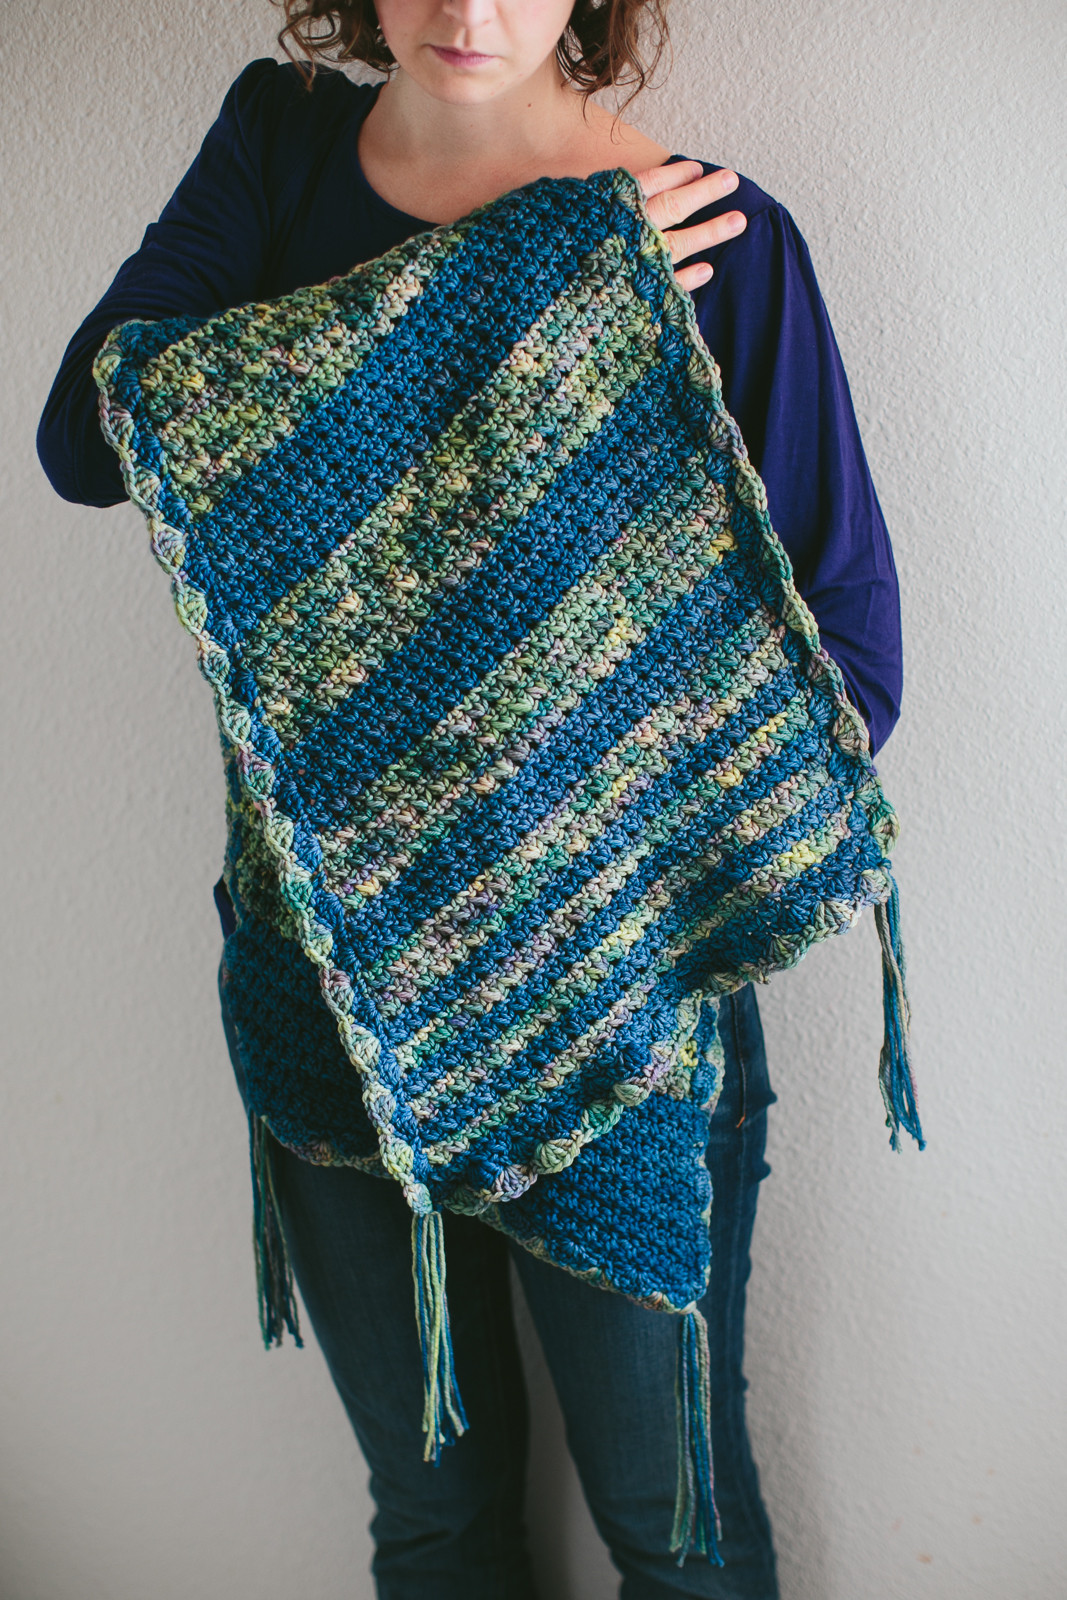 Prayer Shawl Patterns Best Of Free Pattern the Power Of A Prayer Shawl Of Lovely 41 Pictures Prayer Shawl Patterns